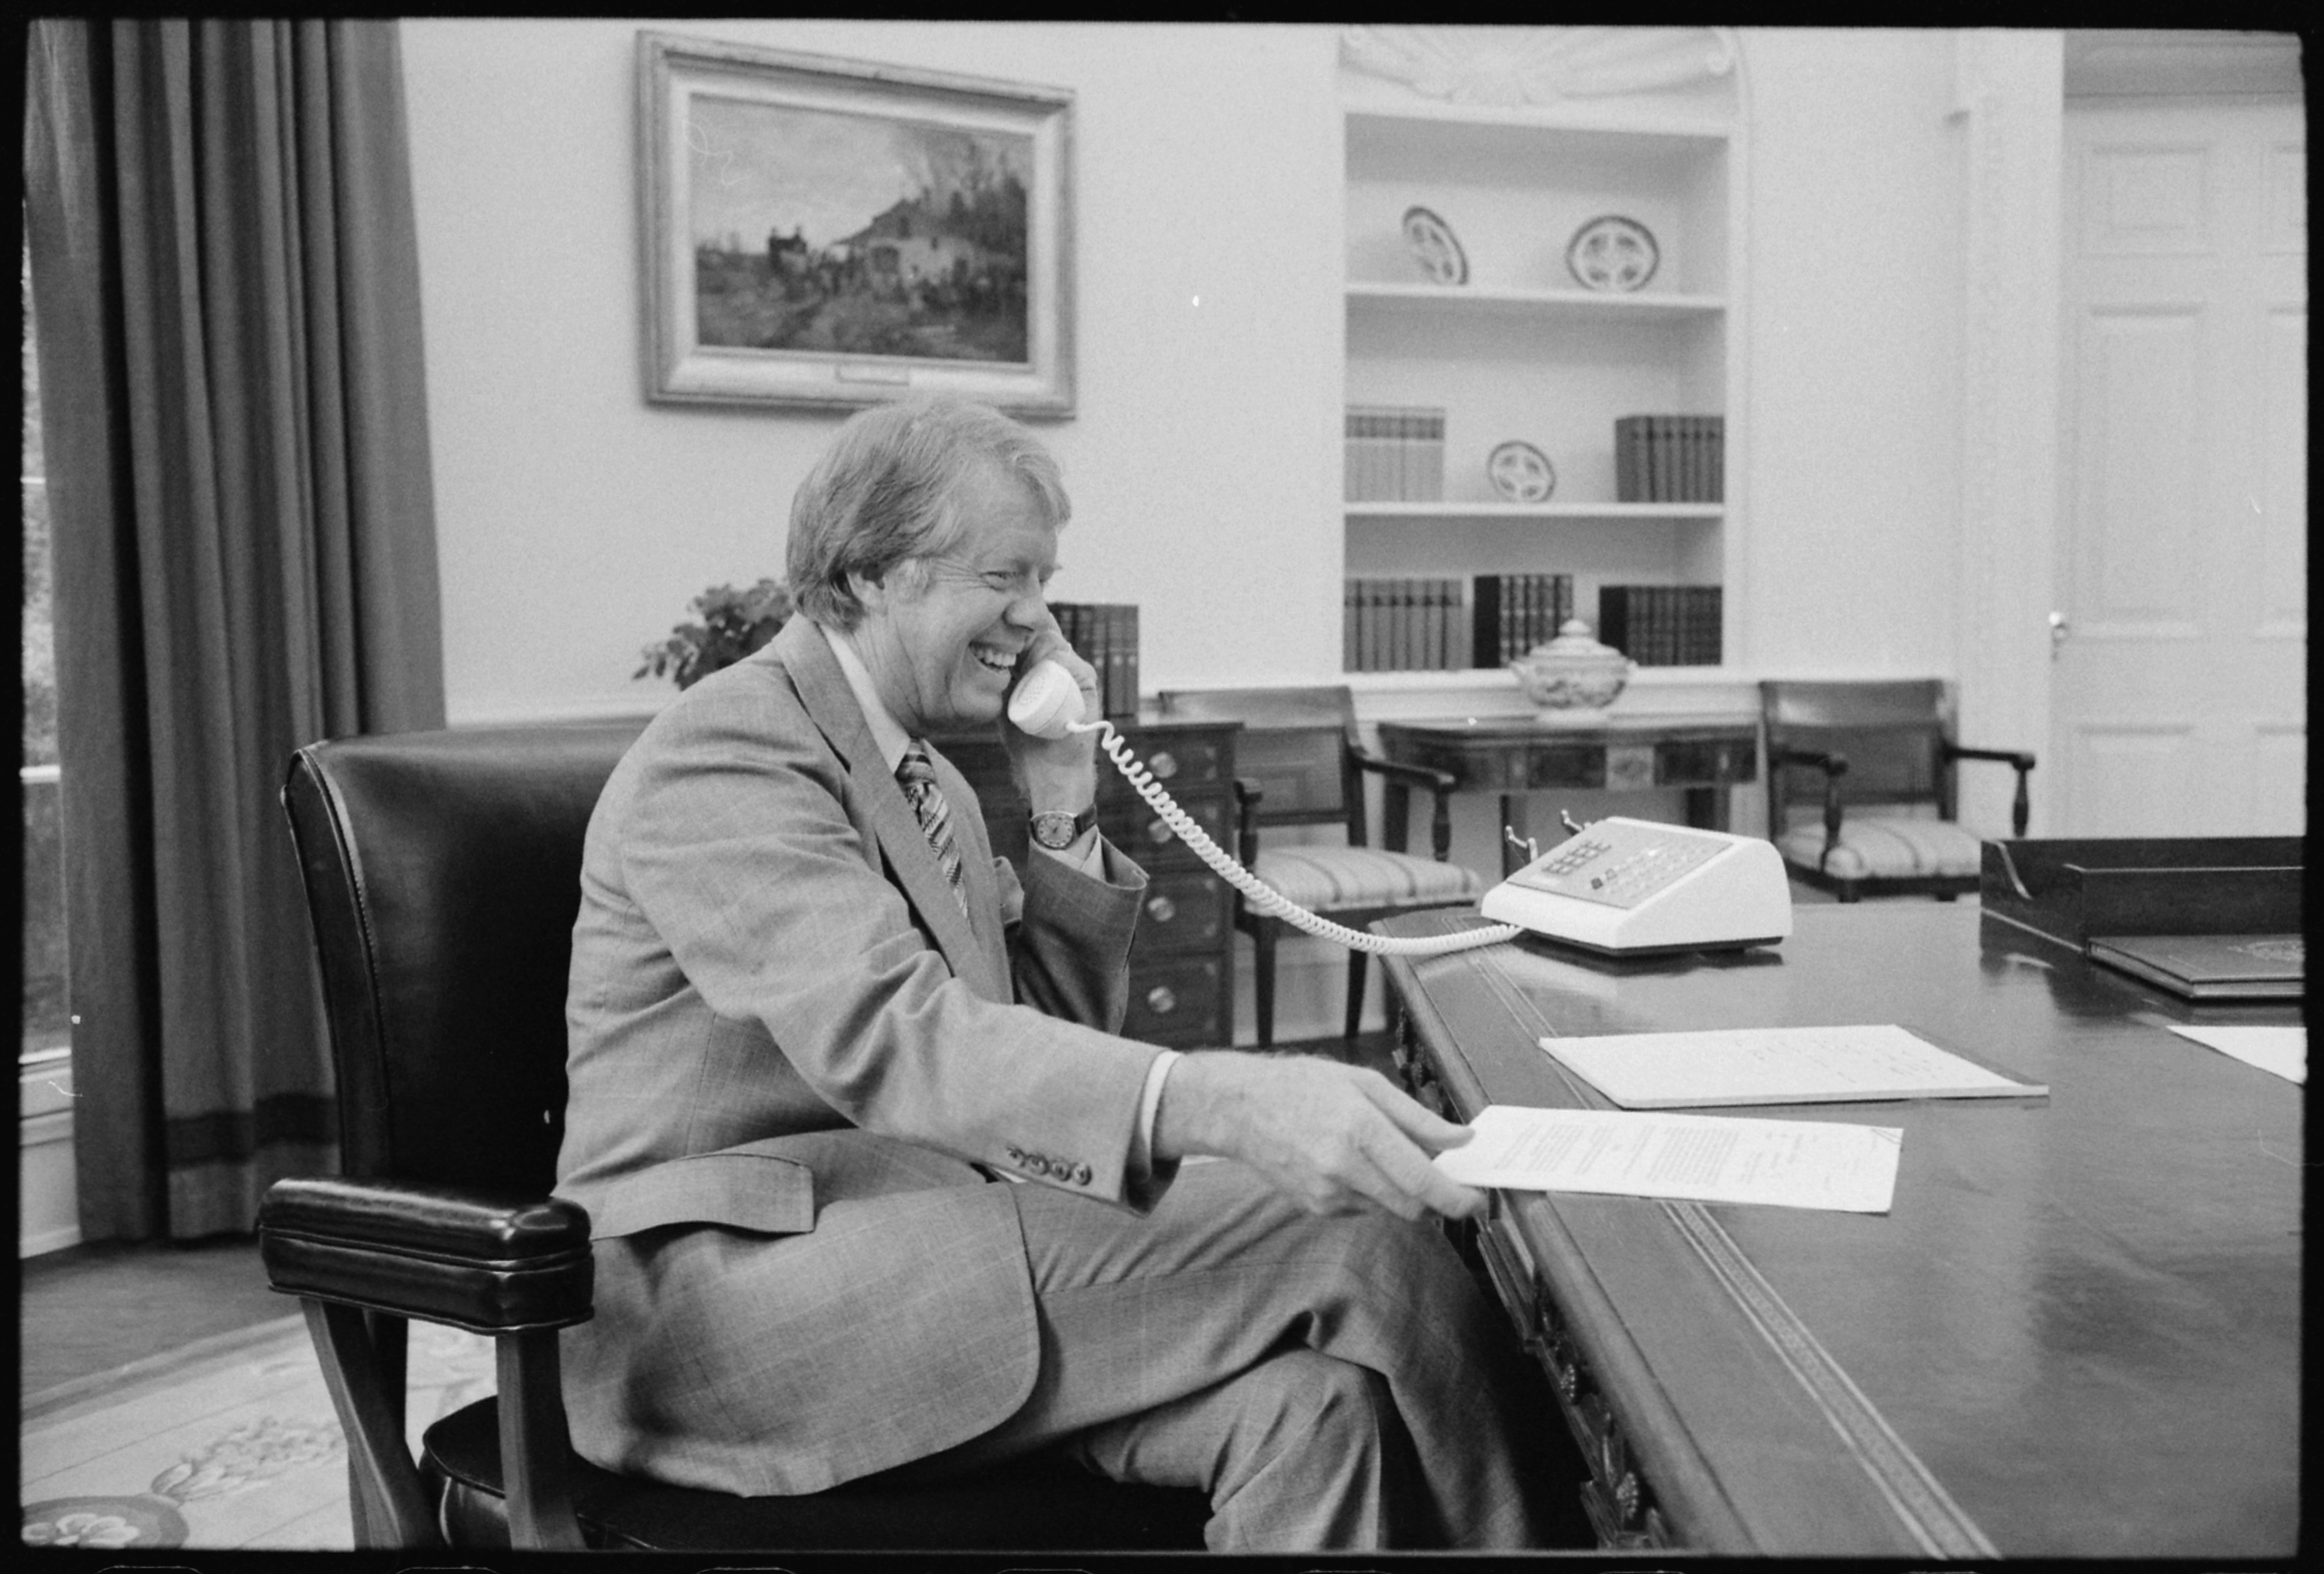 jimmy carter oval office. file:jimmy carter at his desk in the oval office - nara 175967. jimmy a